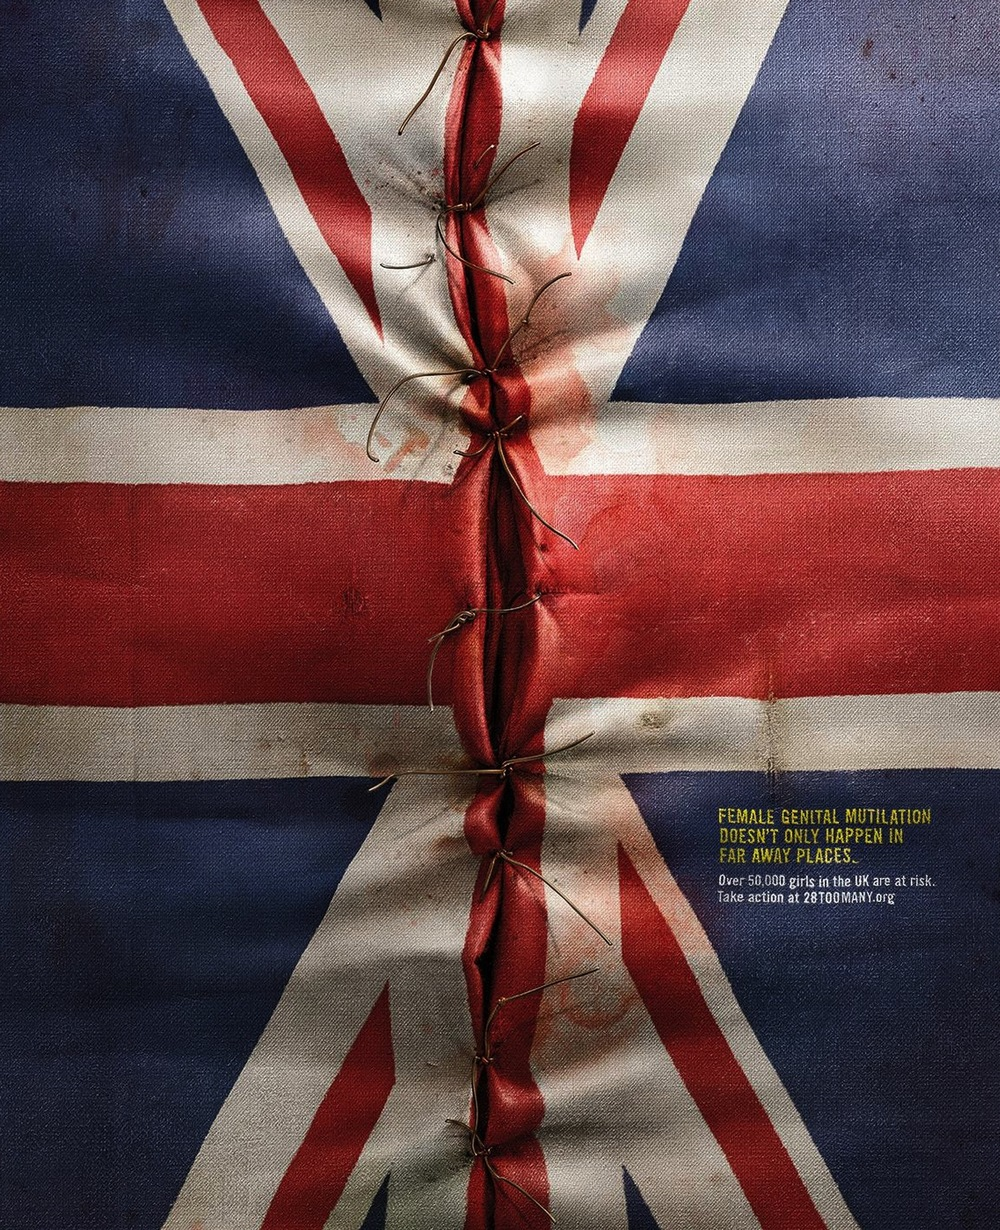 28 Too Many 's  FGM... Let's End It  campaign across Europe.